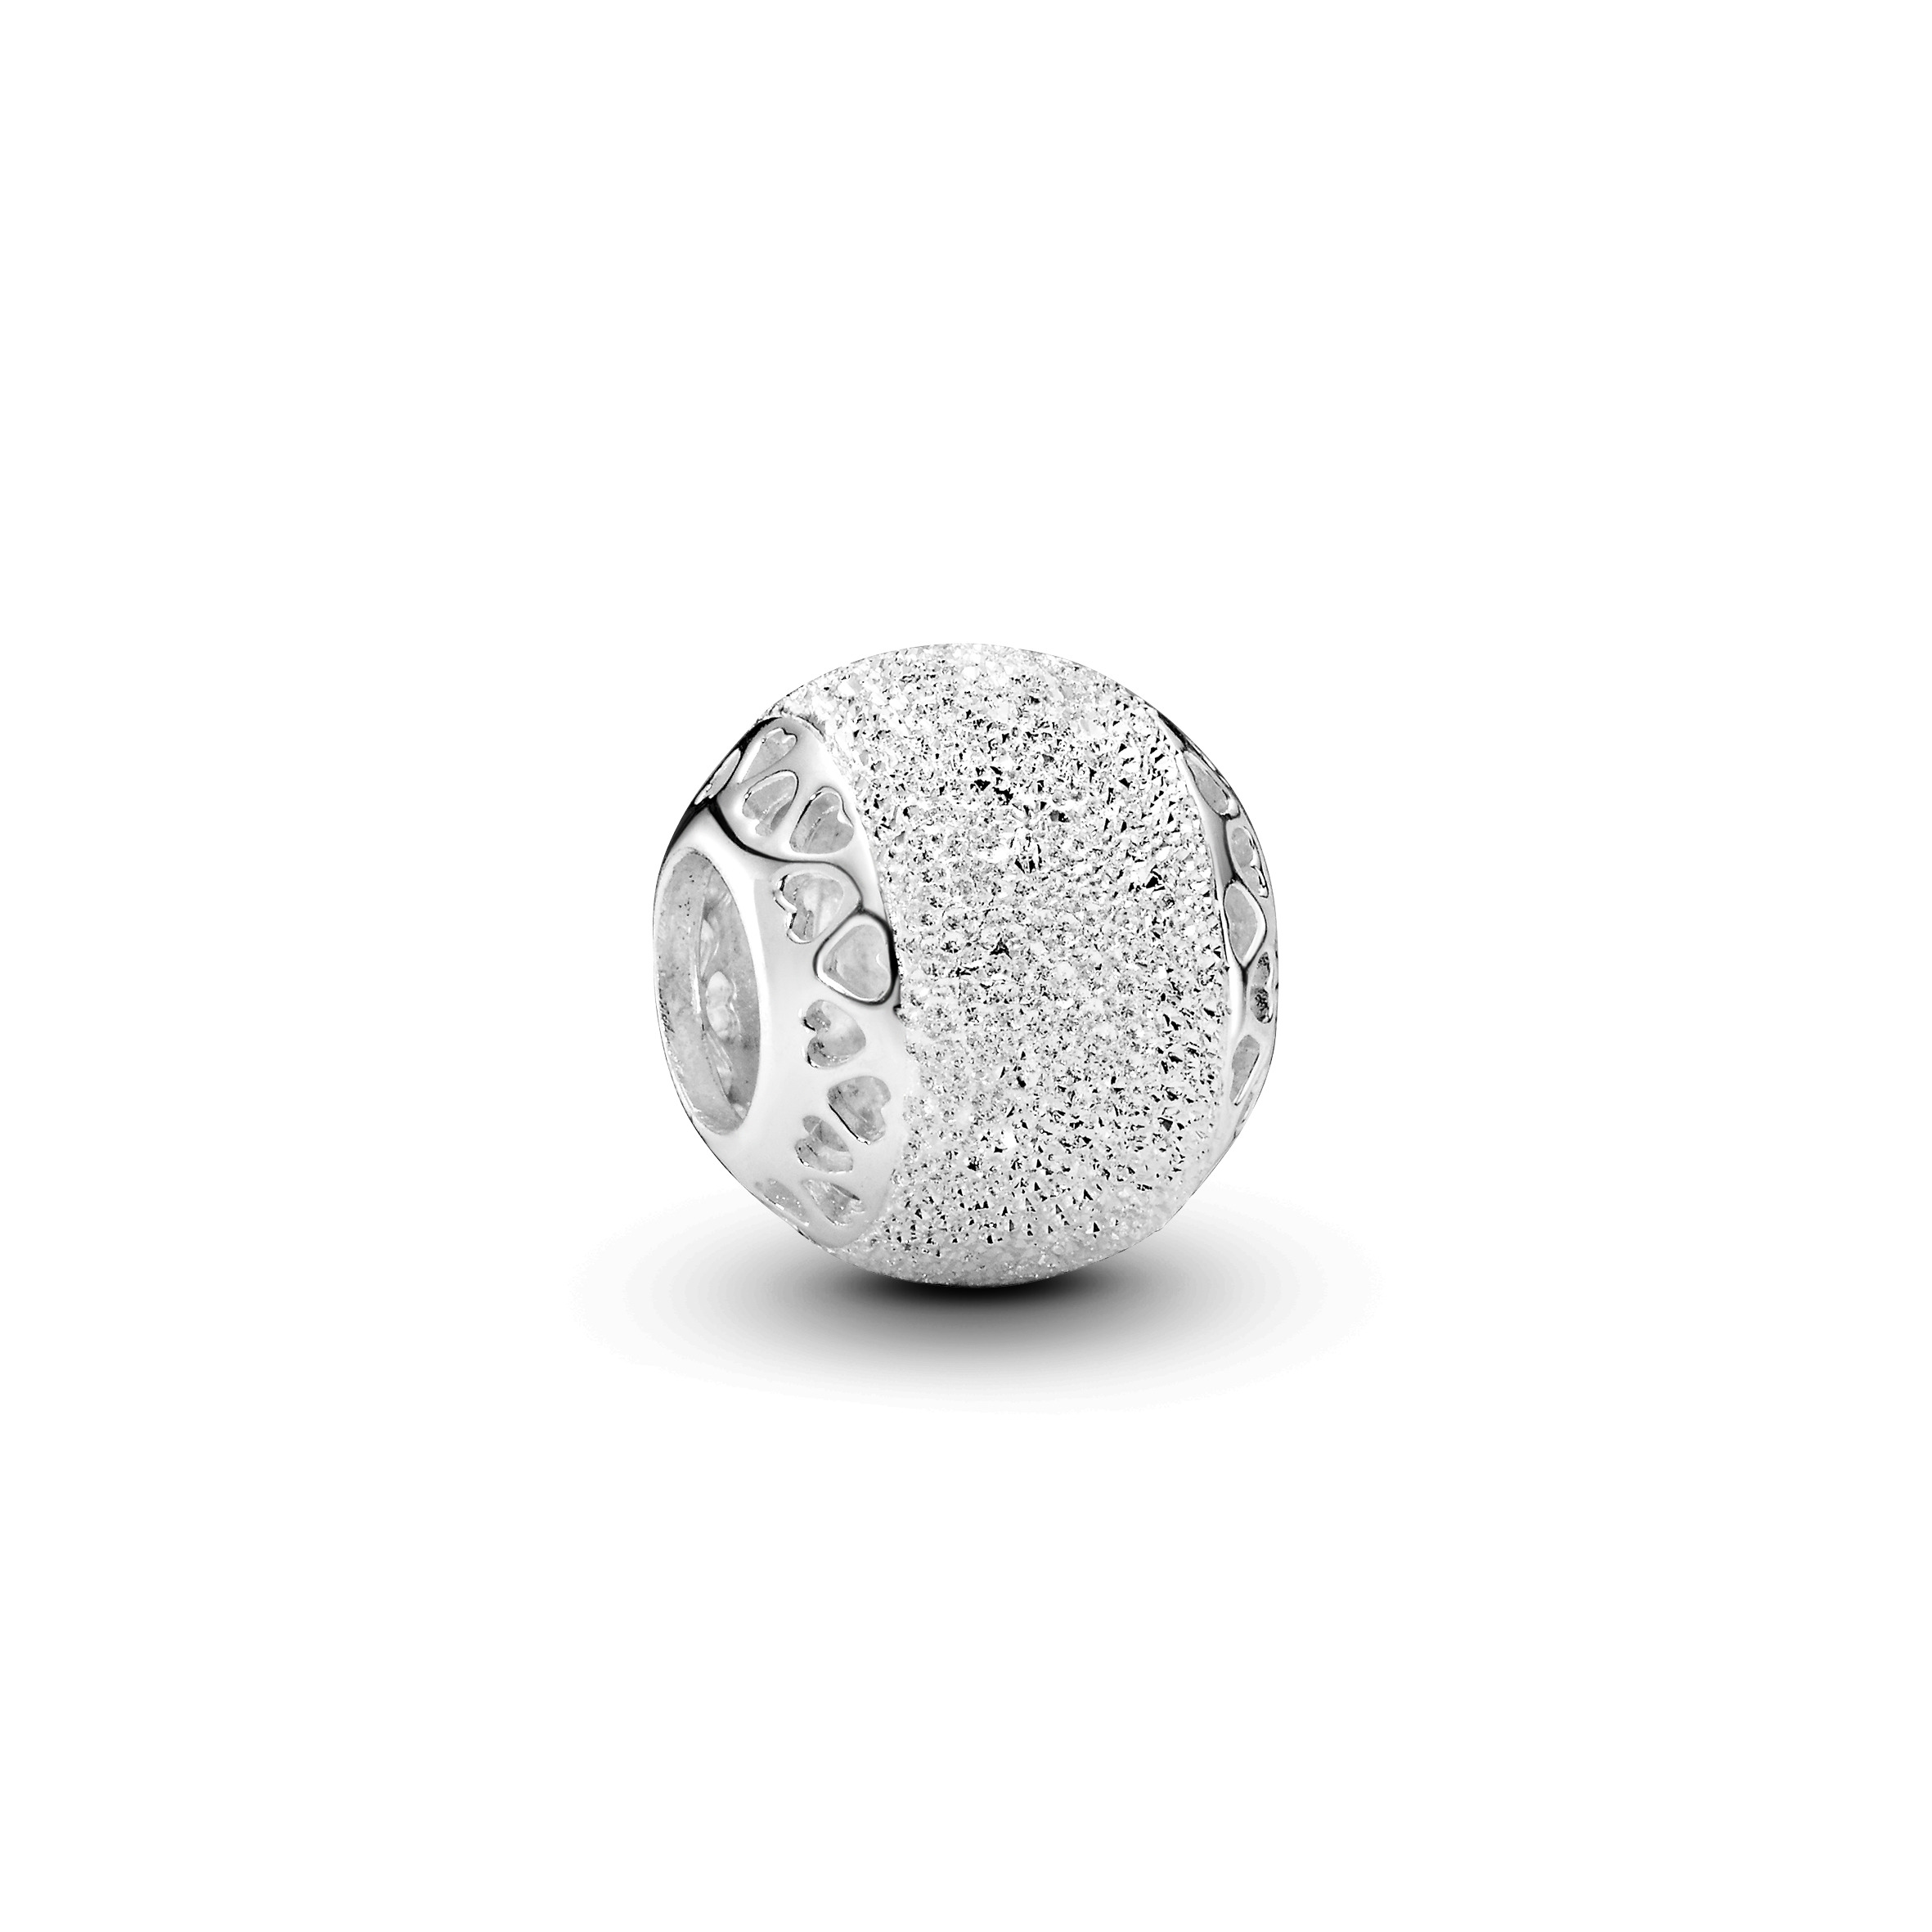 Silver charm with diamond pointing - Tilbehør / Smykker